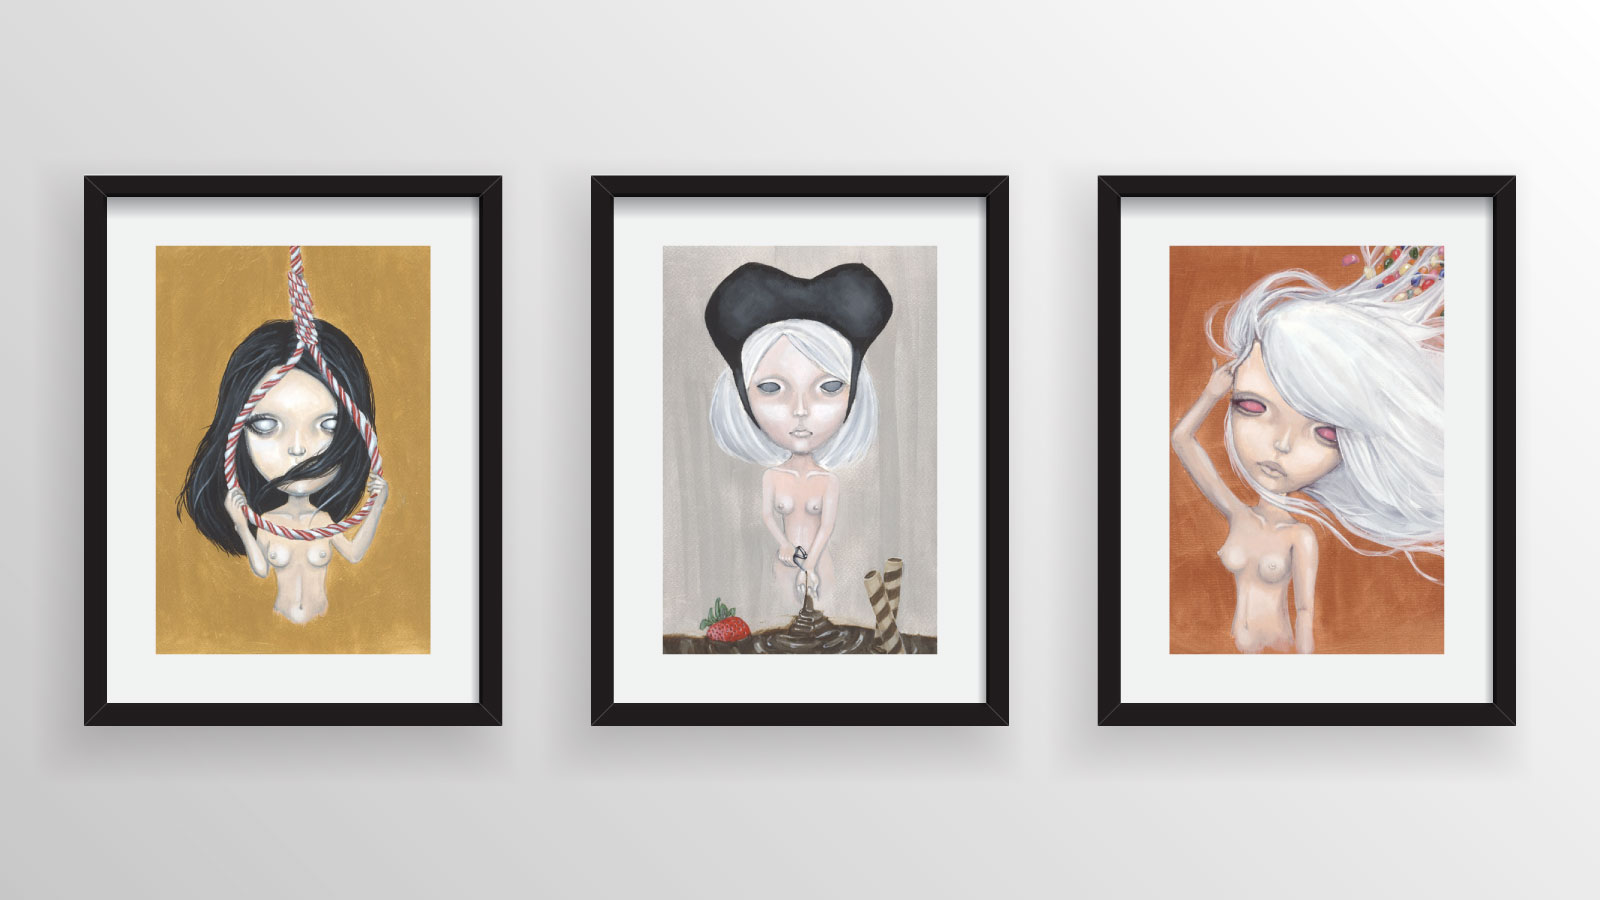 Sweetest Surrender - series of three 8x11.5in acrylic paintings on paper, framed.